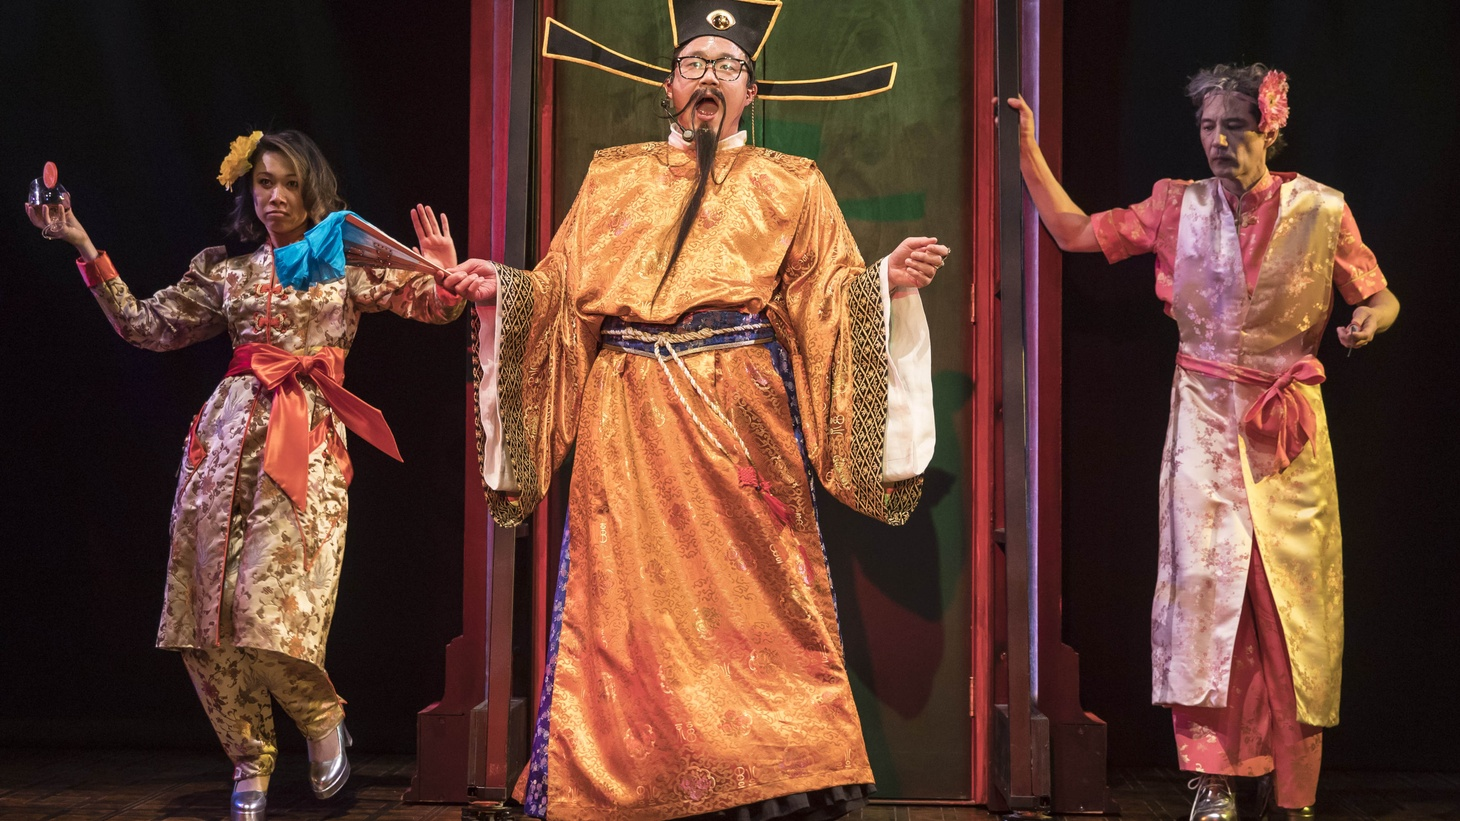 """In the play """"King of the Yees,"""" Larry Yee is part of an obsolescent Chinese men's club, but his daughter Lauren thinks the club is no longer relevant -- and neither is the Chinatown she grew up in. The play looks at their father-daughter relationship, Chinese American culture, and how Asian Americans are represented onstage."""